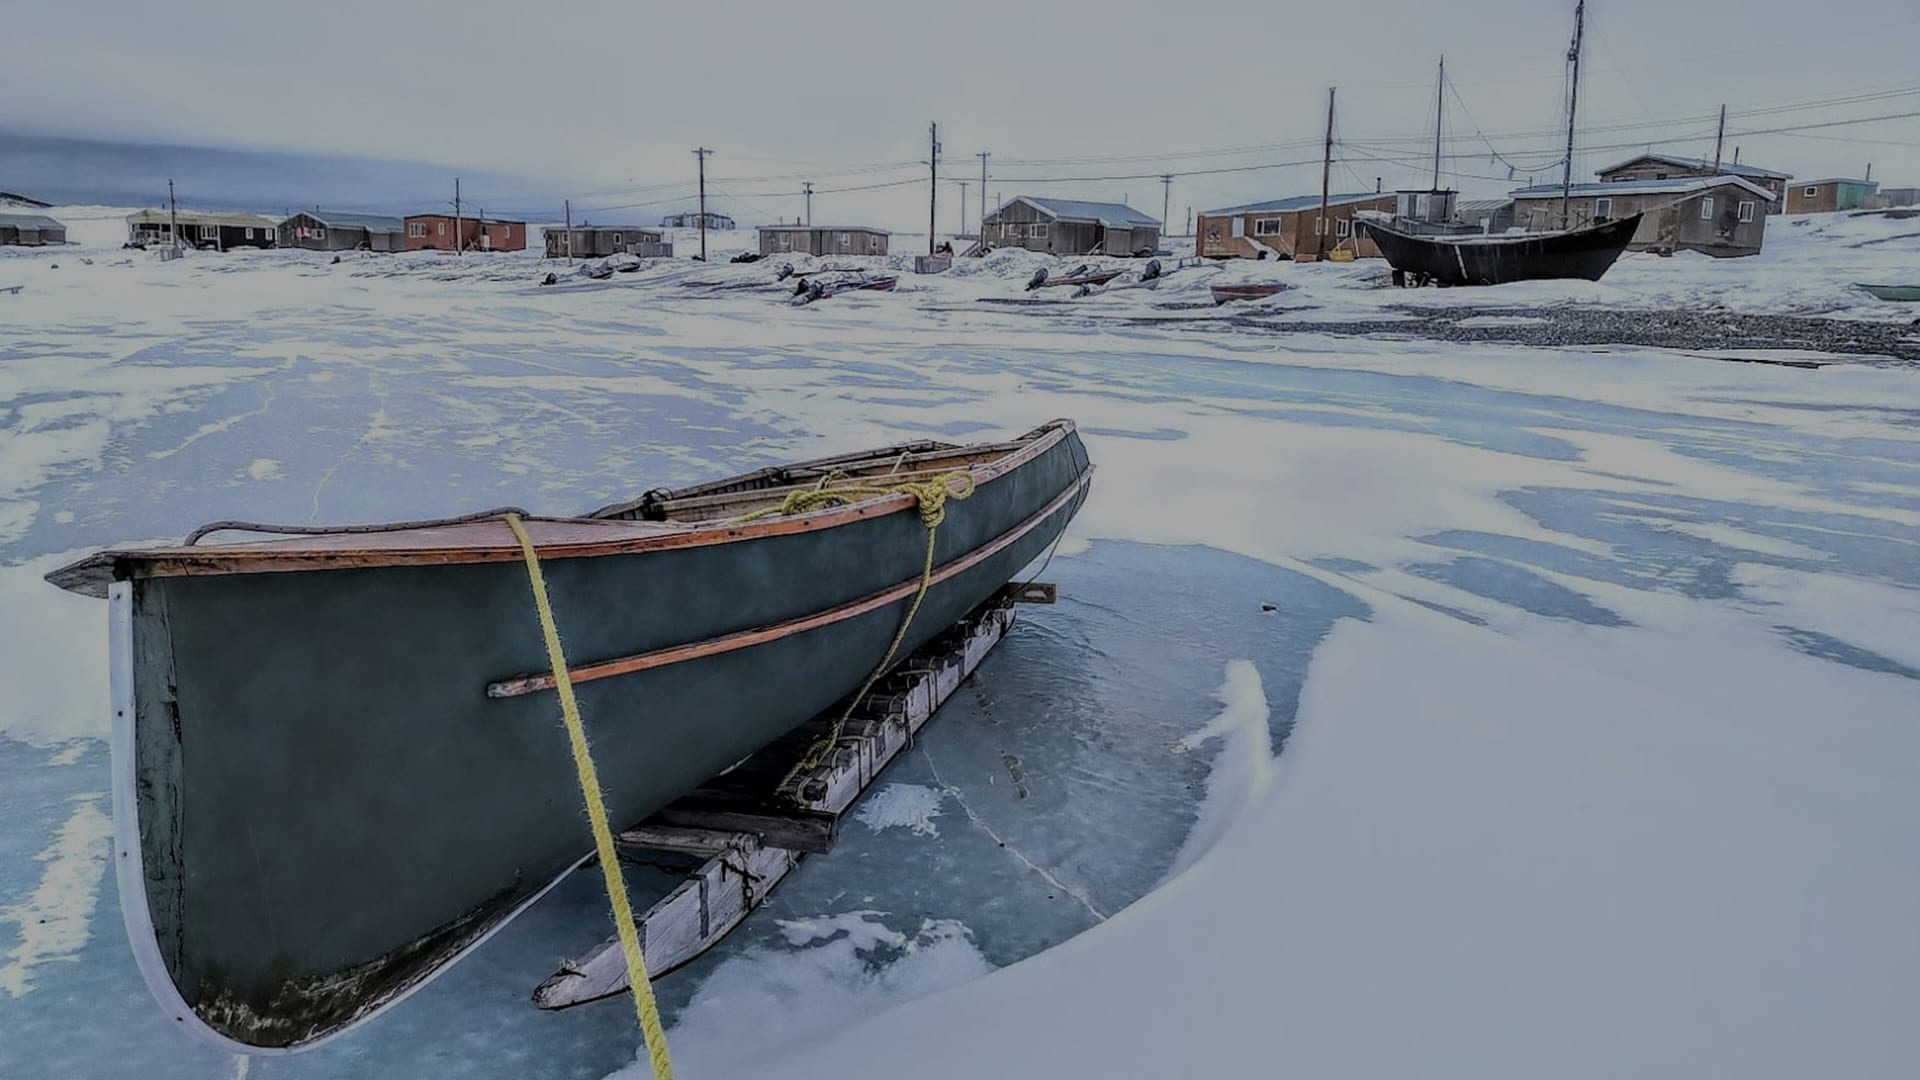 Hunger in the Arctic prompts focus on causes, not symptoms